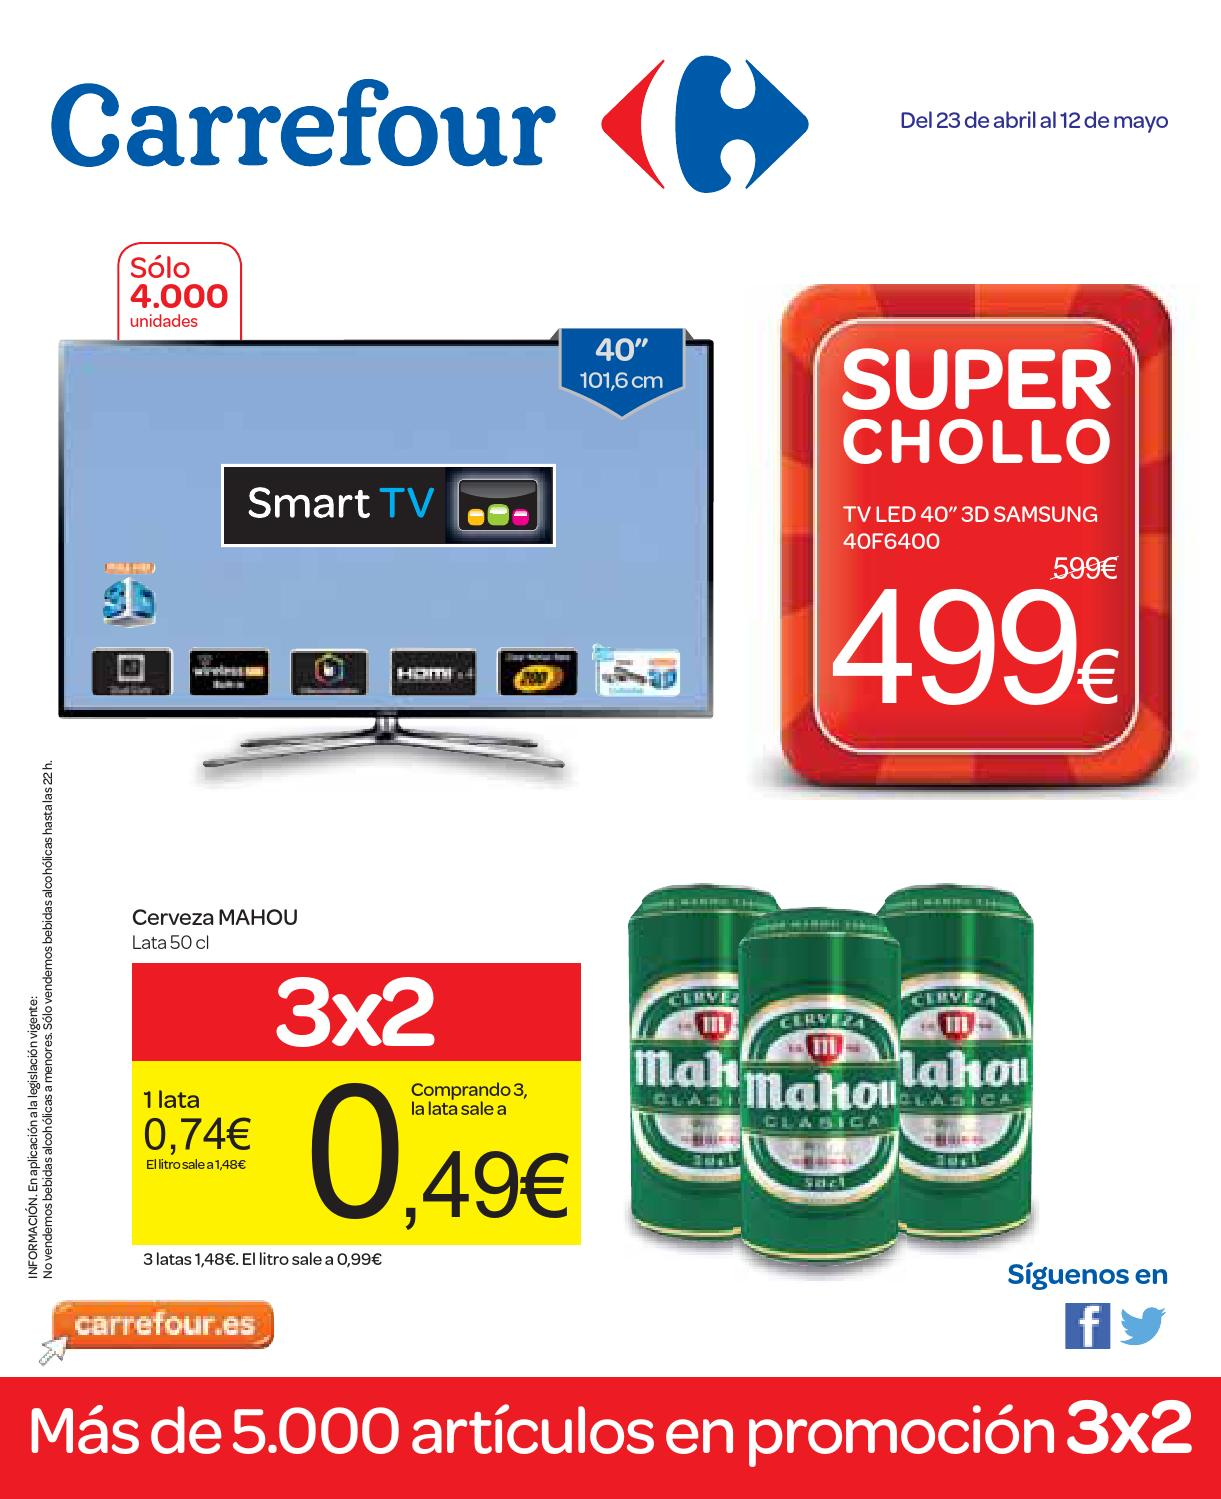 Colchones carrefour online simple catalogo carrefour online black friday with colchones - Colchones baratos carrefour ...